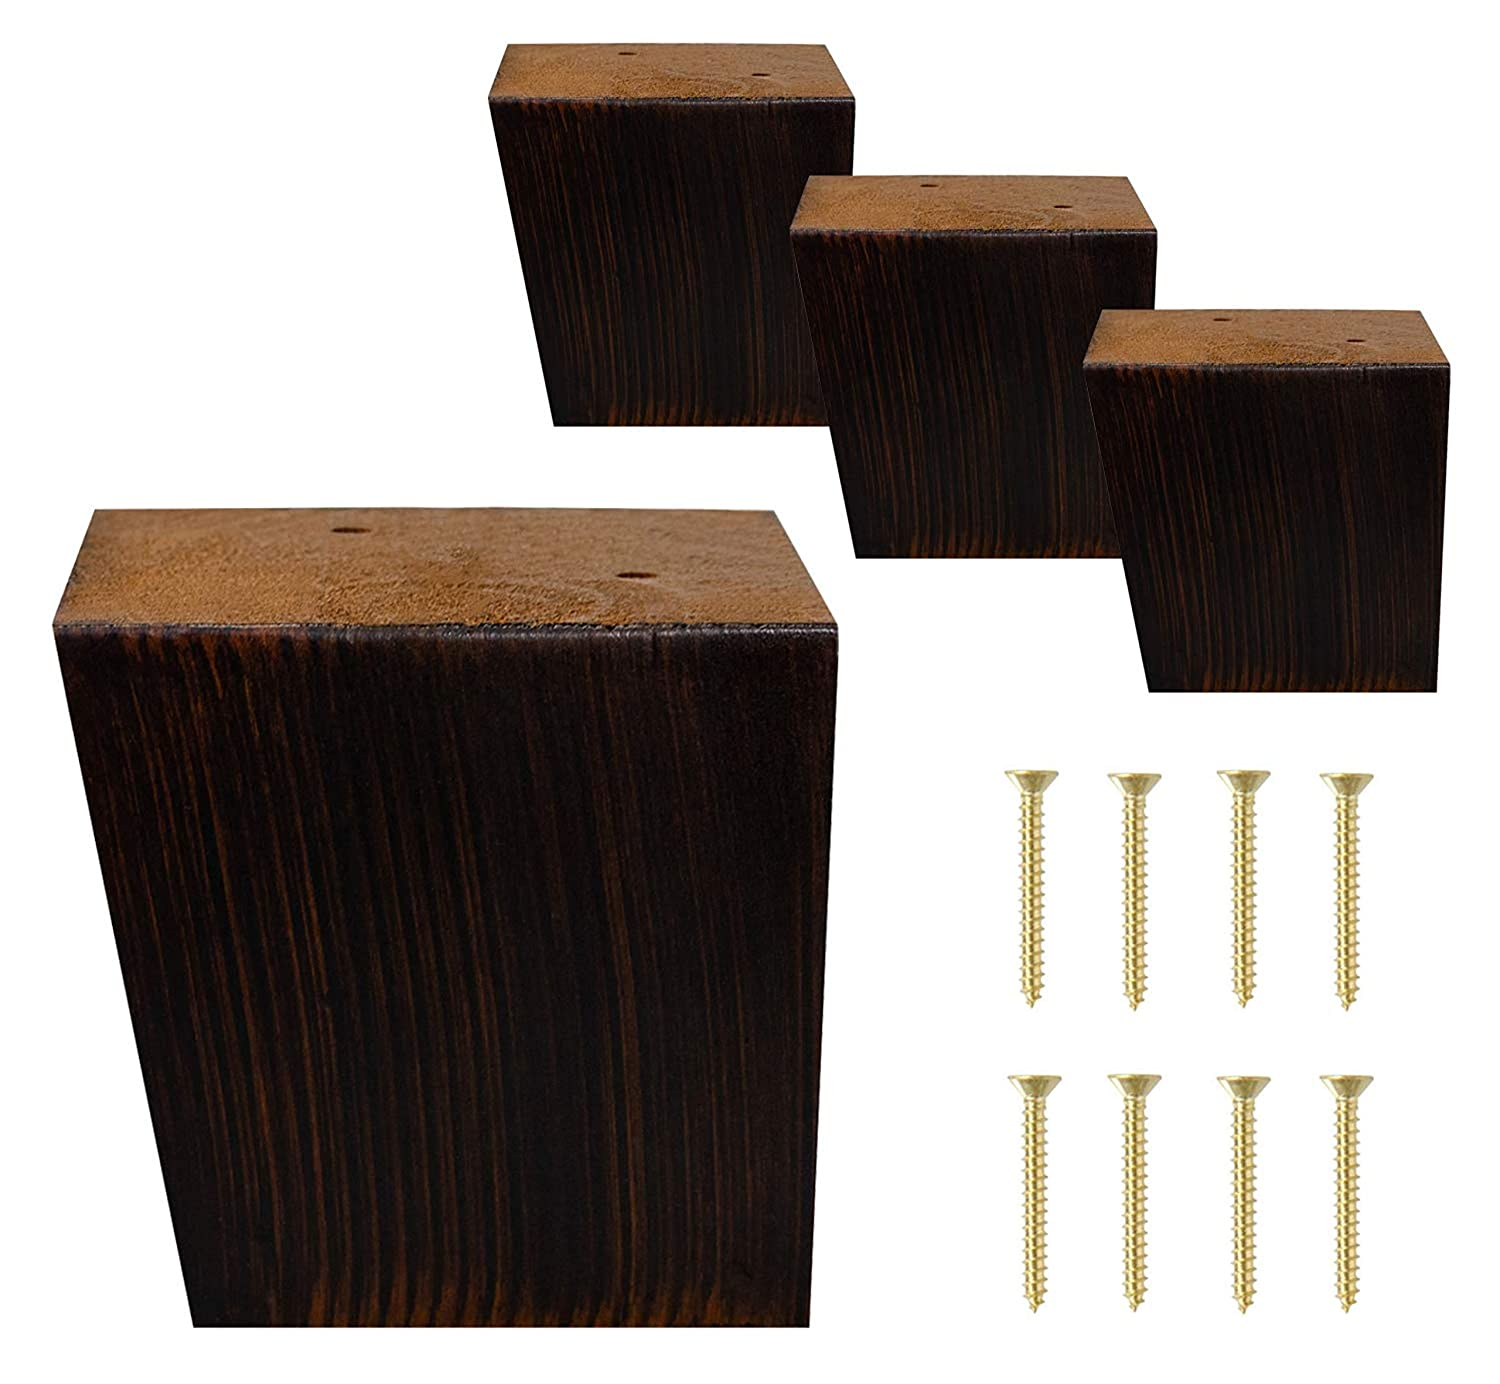 "ComfortStyle Furniture Legs, Sofa Ottoman and Chair 3.5"" Wood Feet Replacement, Set of 4 Mid Century Modern Angled Feet, Brushed Espresso Finish"